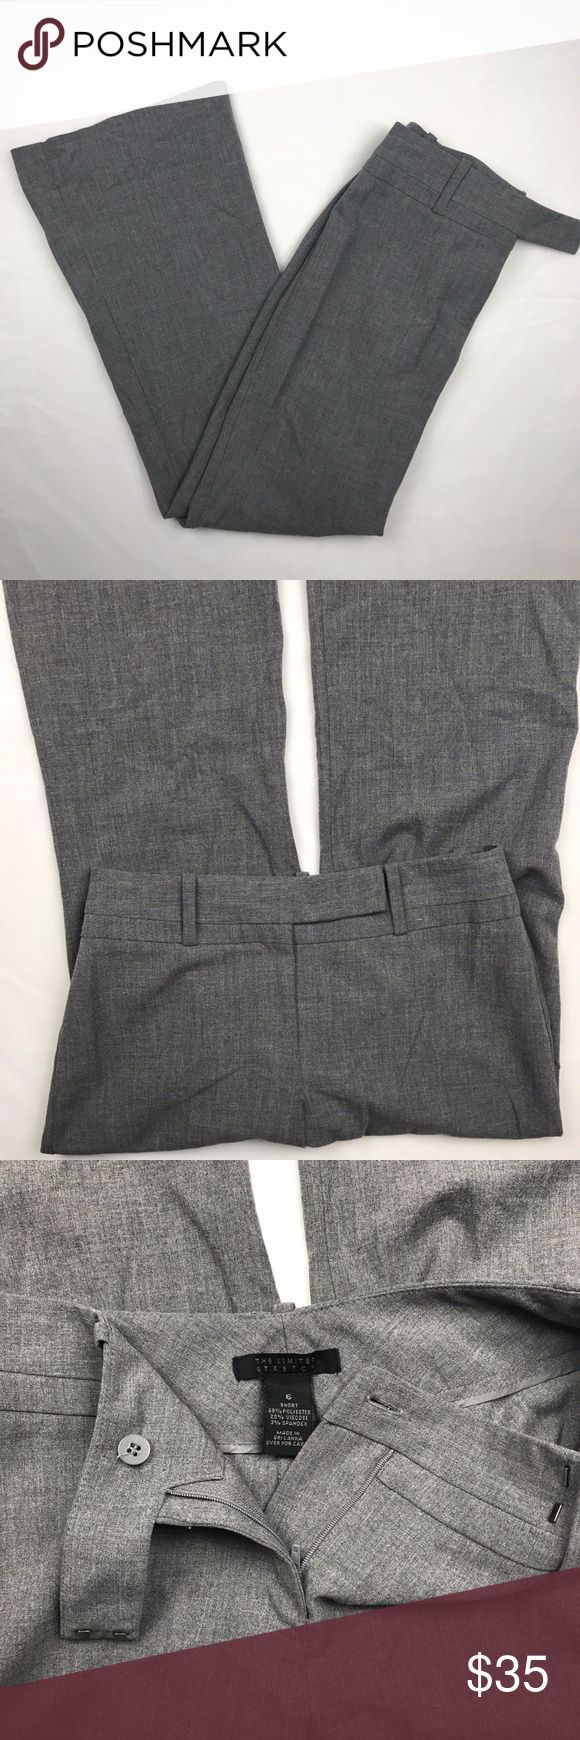 The Limited Stretch Size 6 Short Gray Dress Pants The Limited Stretch Size 6 Short Womens Straight Leg Gray Dress Pants. Double Hook Latch and Zipper to Fasten. Inseam: 30 inches. Material: 68% Polyester 29% Viscose 3% Spandex. Excellent Used Condition. AA7.117. The Limited Pants Trousers